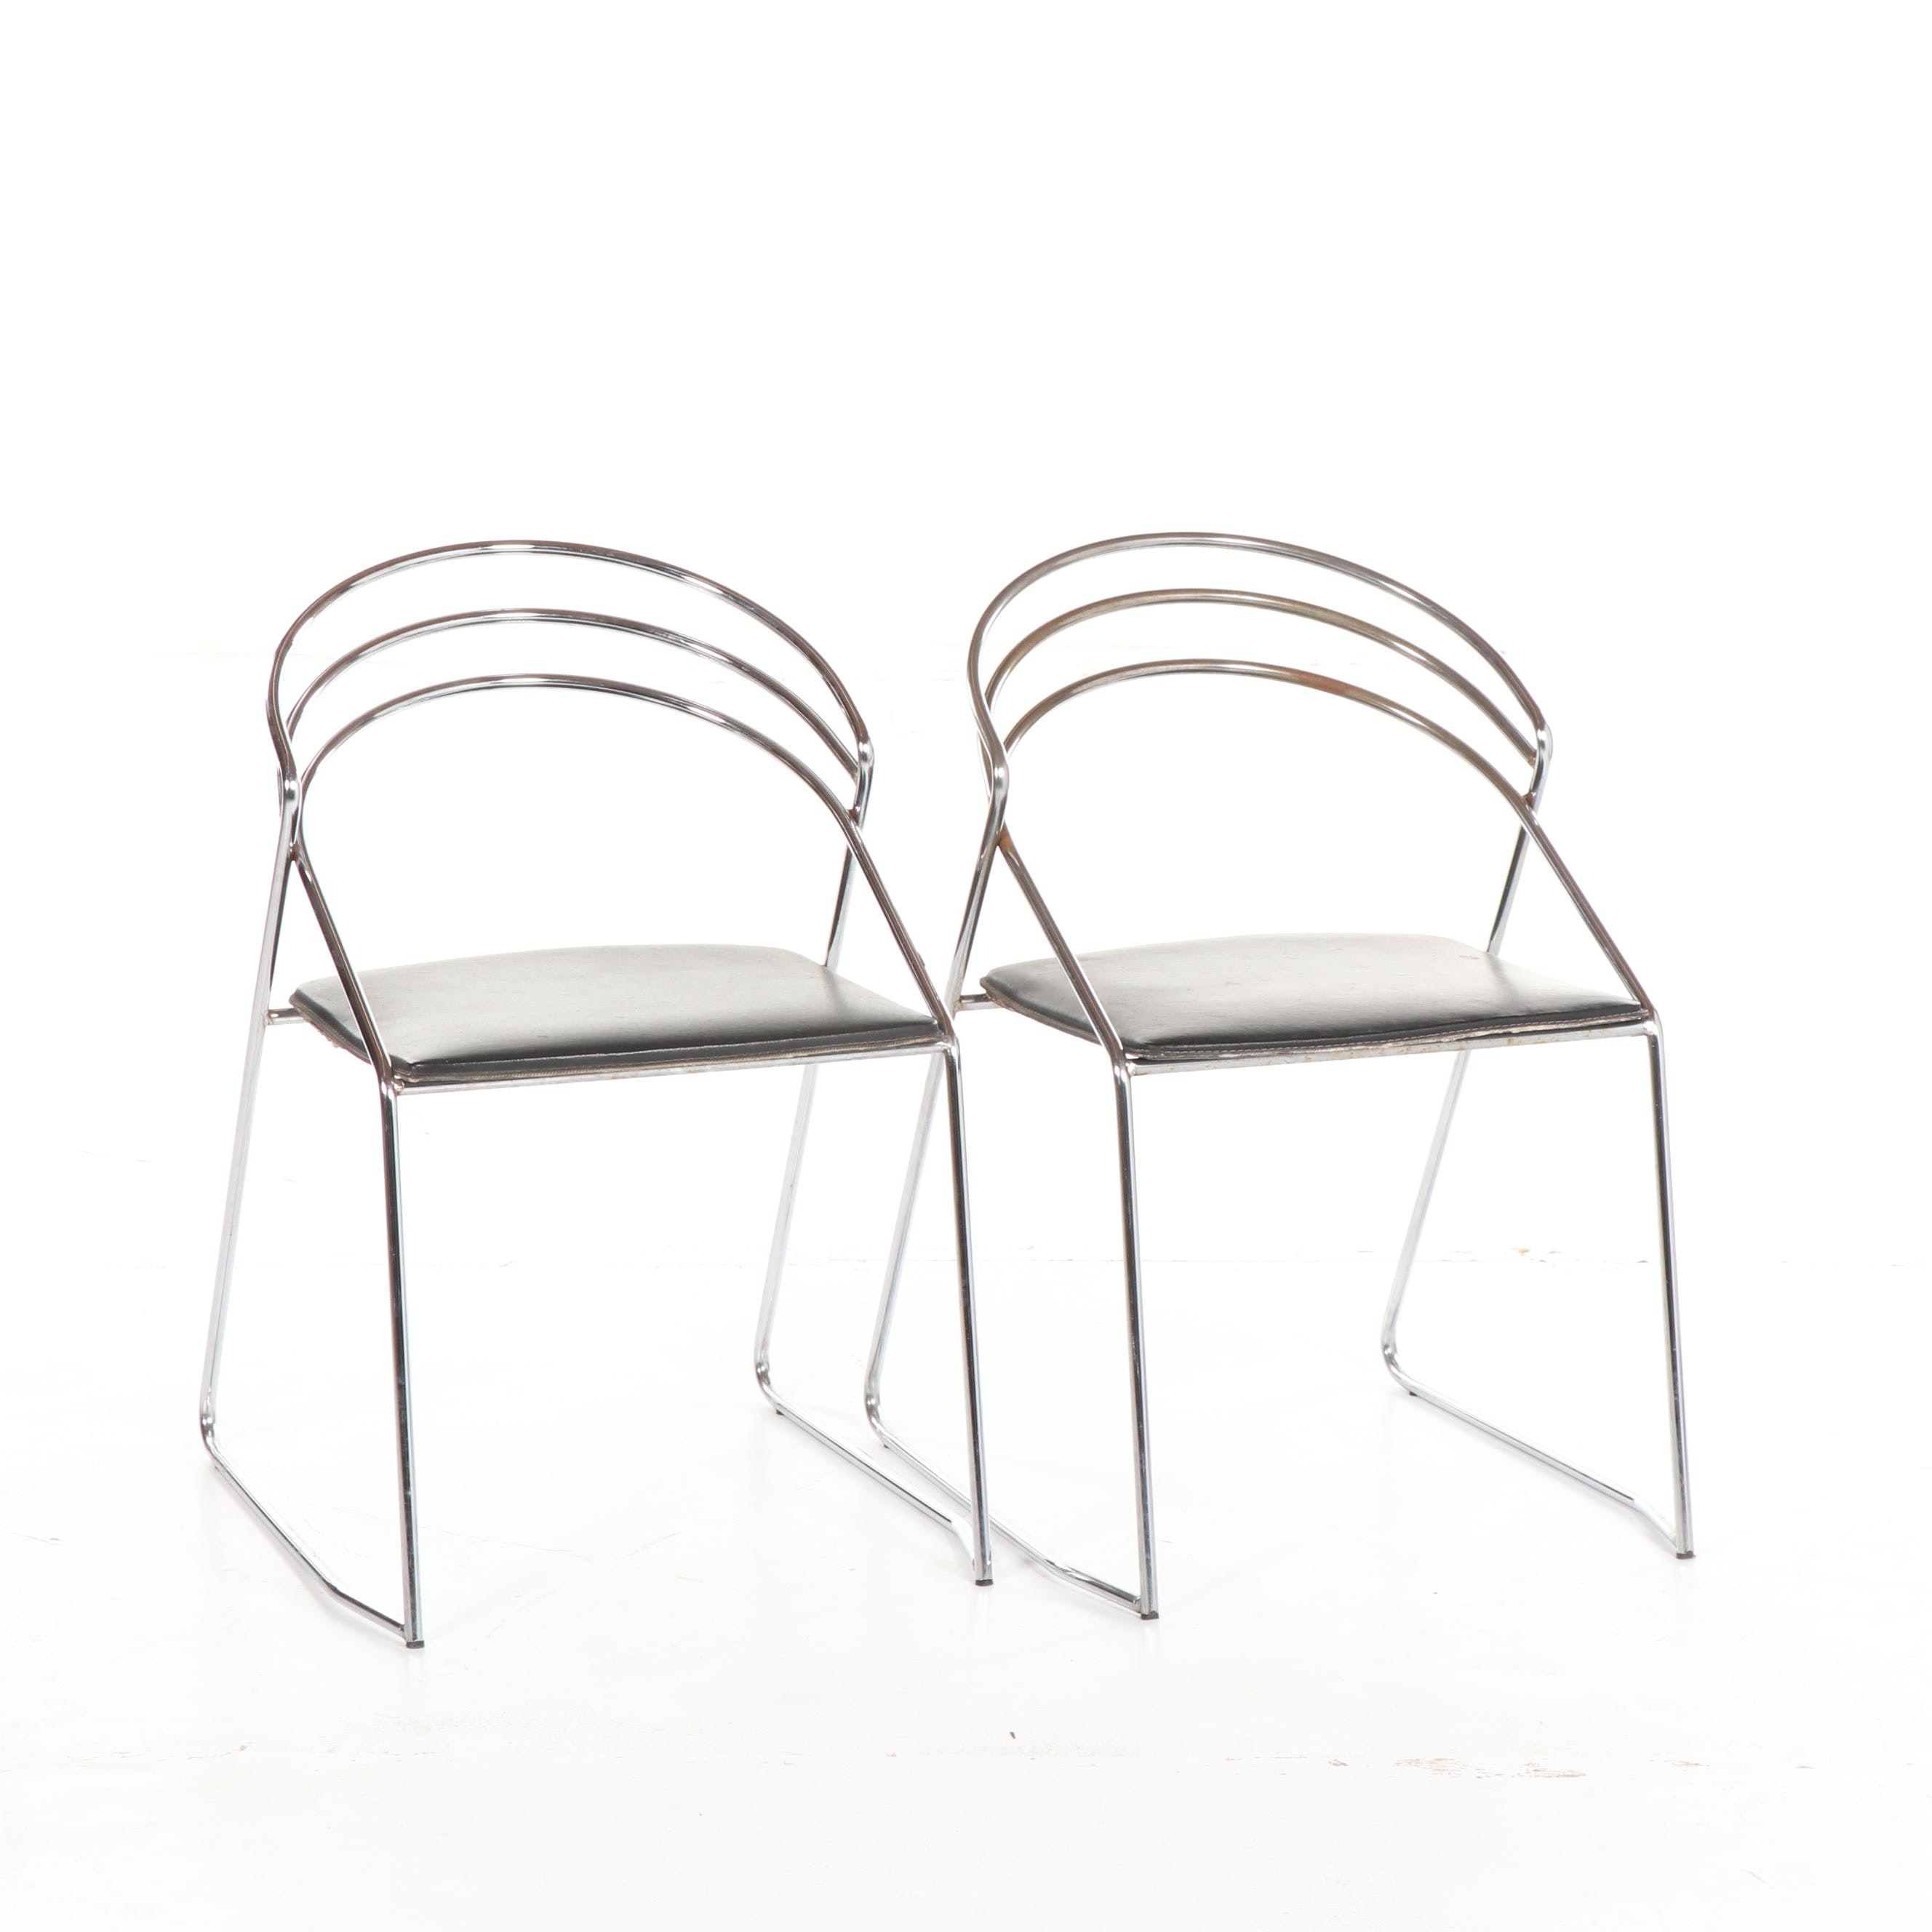 Mid Century Modern Bent Metal Chairs, Mid-20th Century